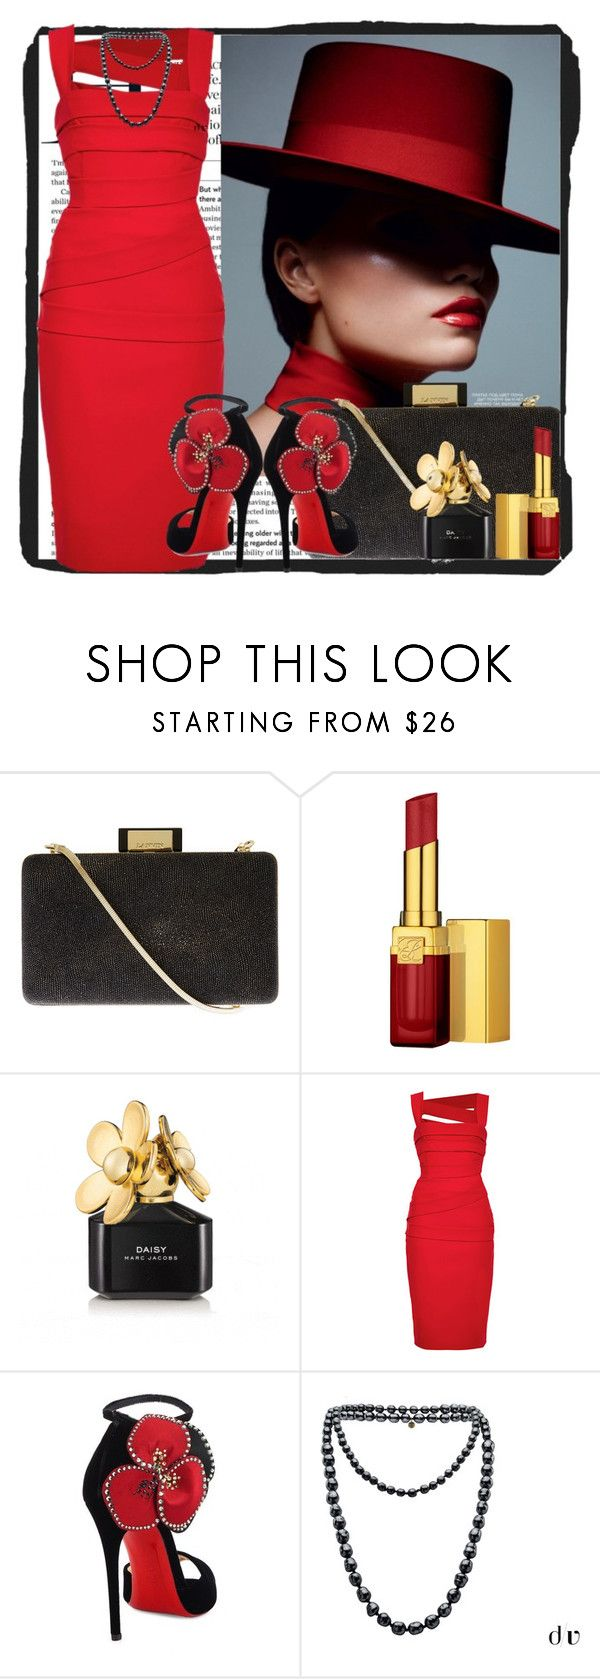 lady in red by sonia1 on Polyvore featuring Christian Louboutin, Lanvin, Chanel, Estée Lauder and Marc Jacobs